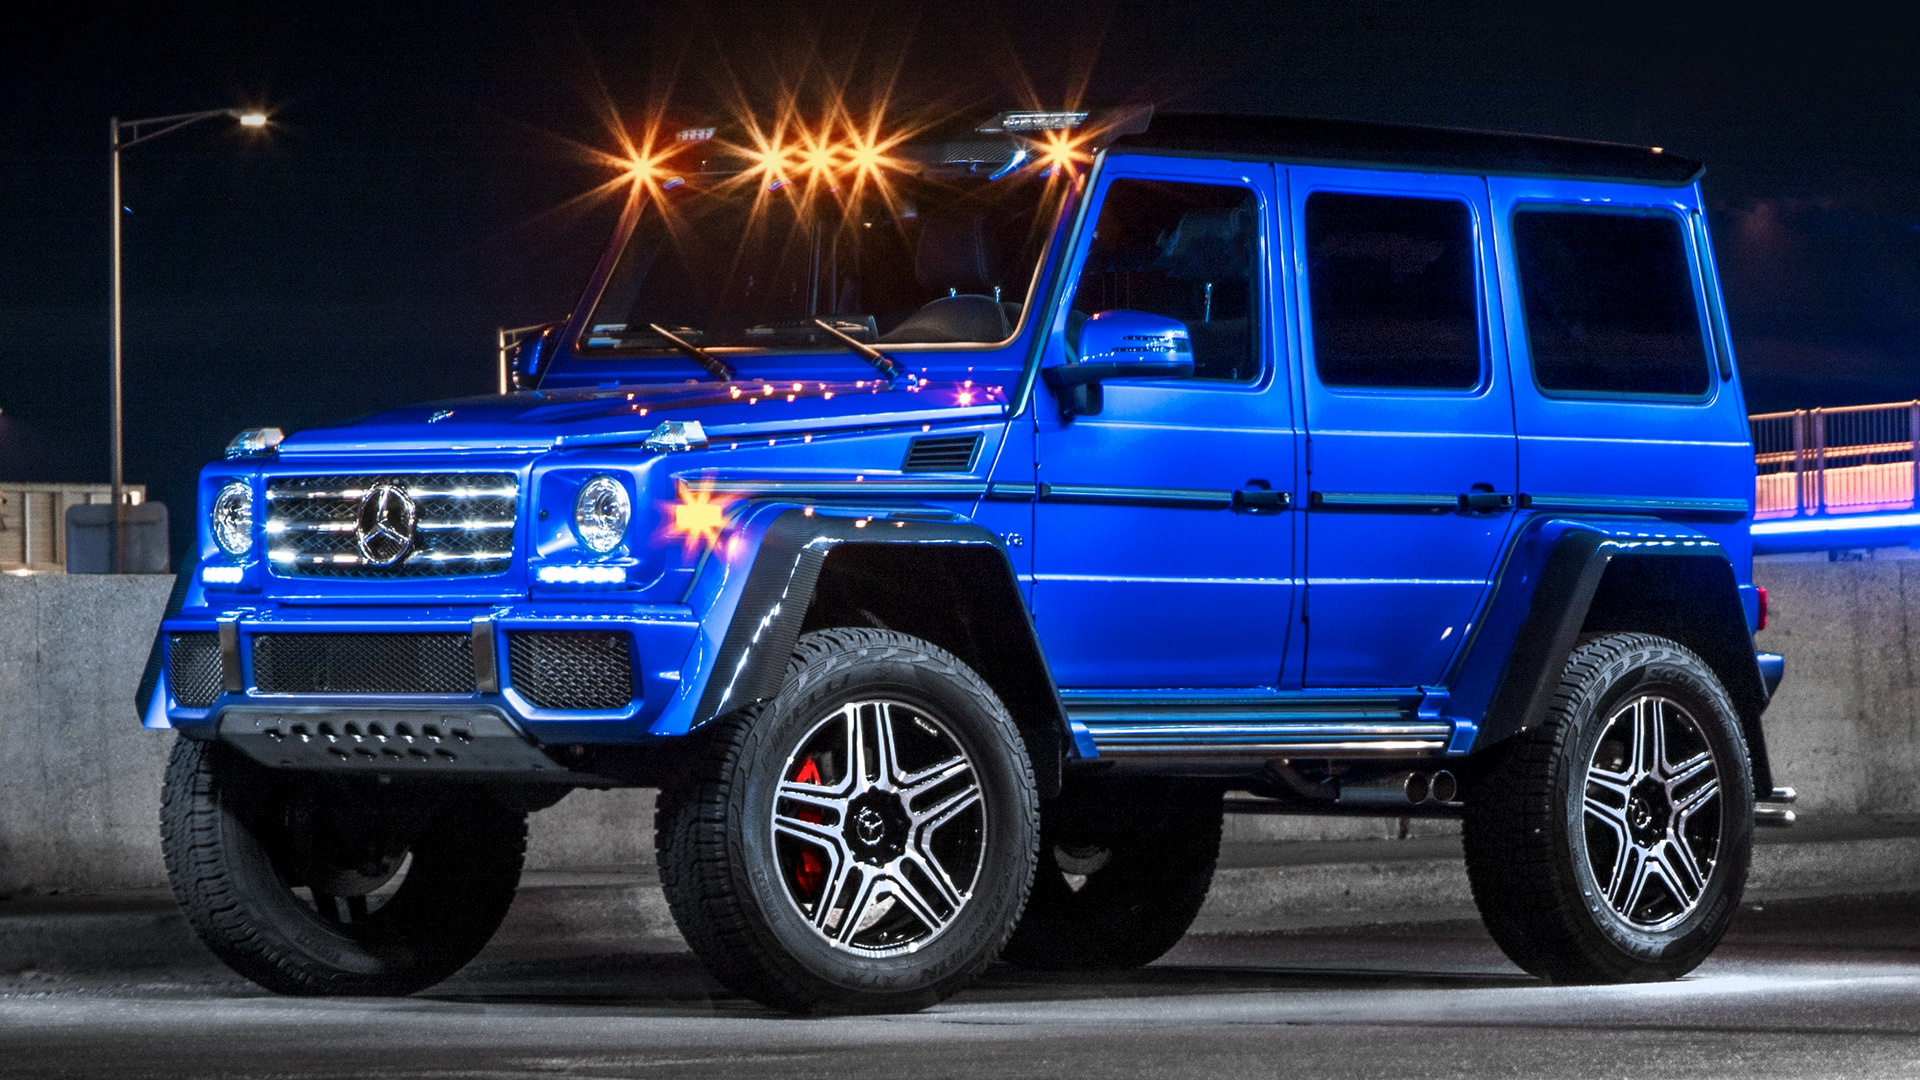 Learn all about it in this helpful guide. 2017 Mercedes Benz G Class Wallpaper Hd 1920x1080 Download Hd Wallpaper Wallpapertip